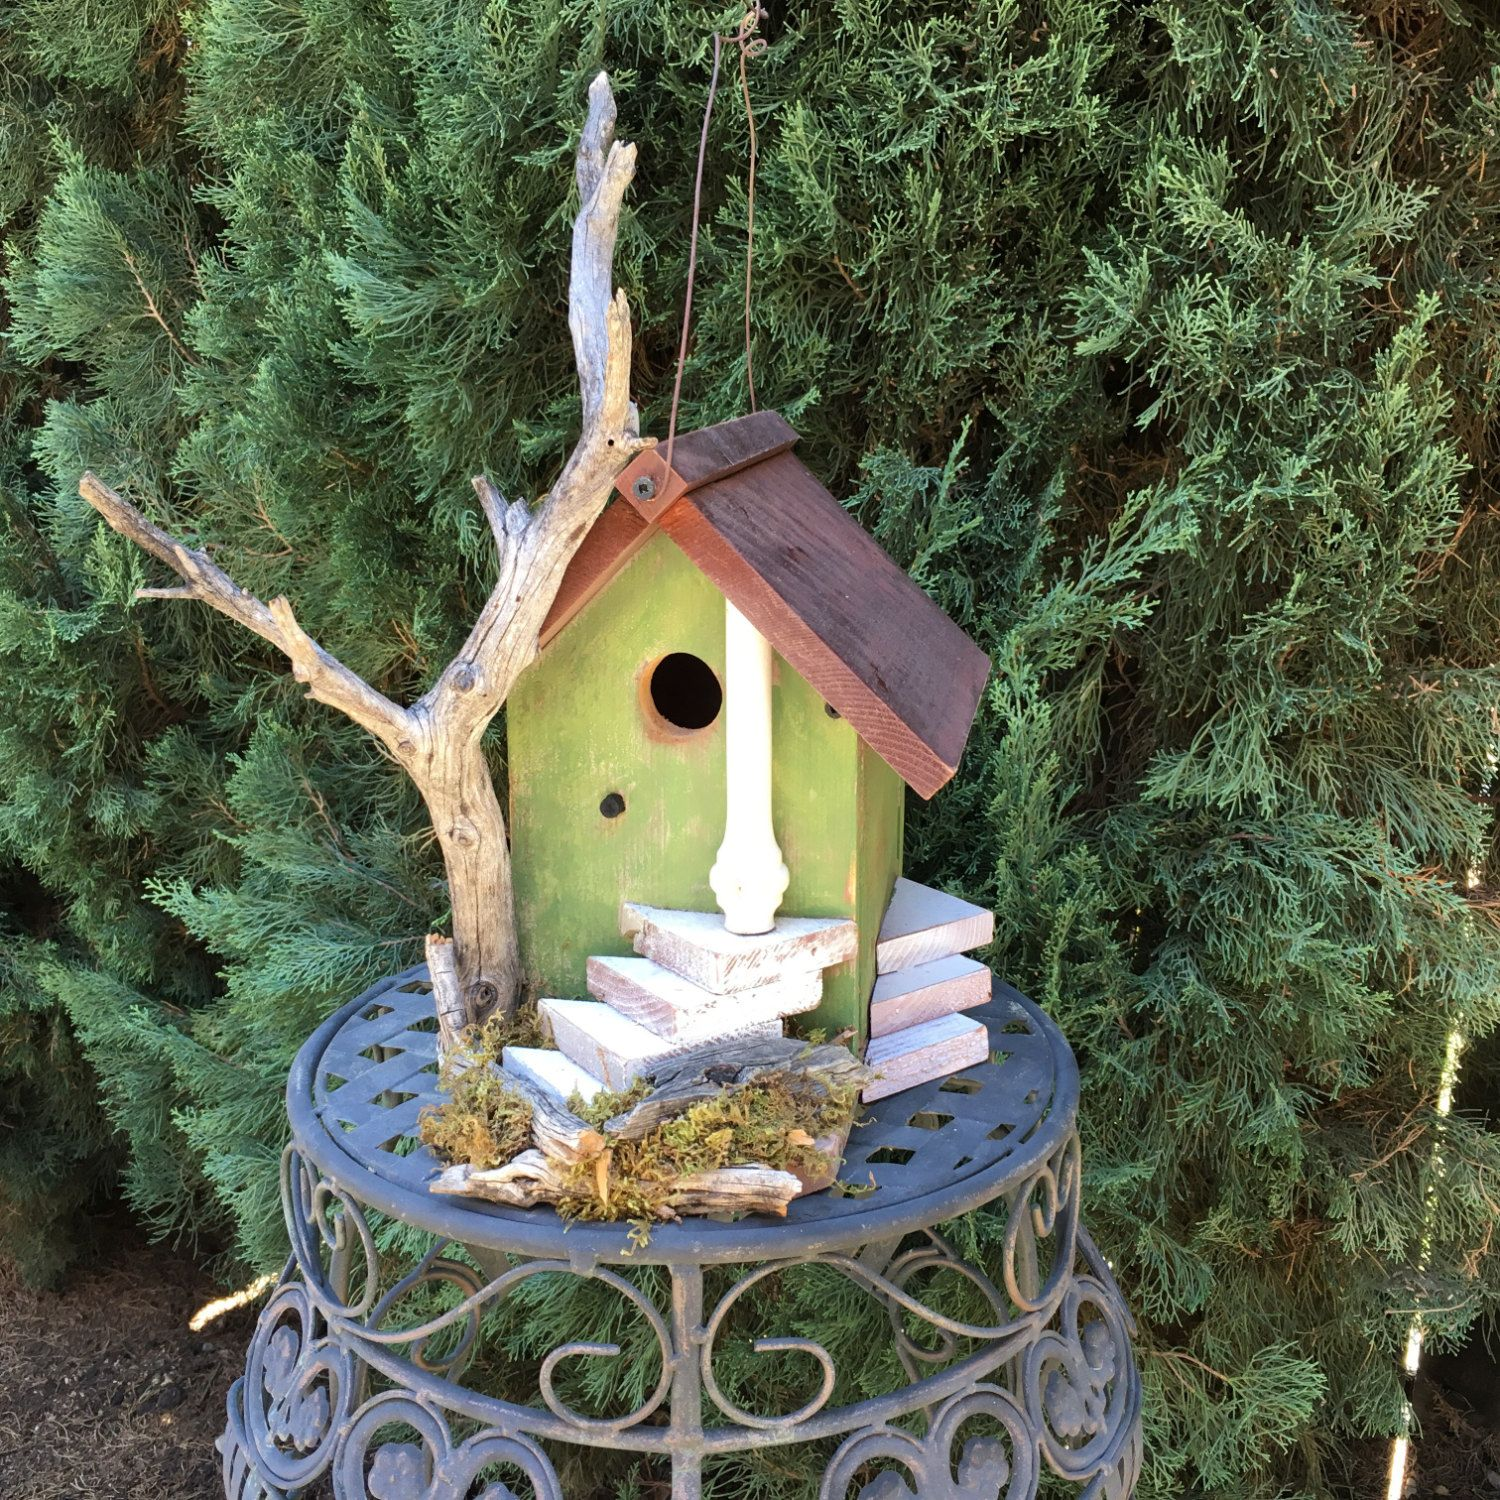 Rustic Wood Birdhouse Functional Unique with Natural Driftwood, Bird House…